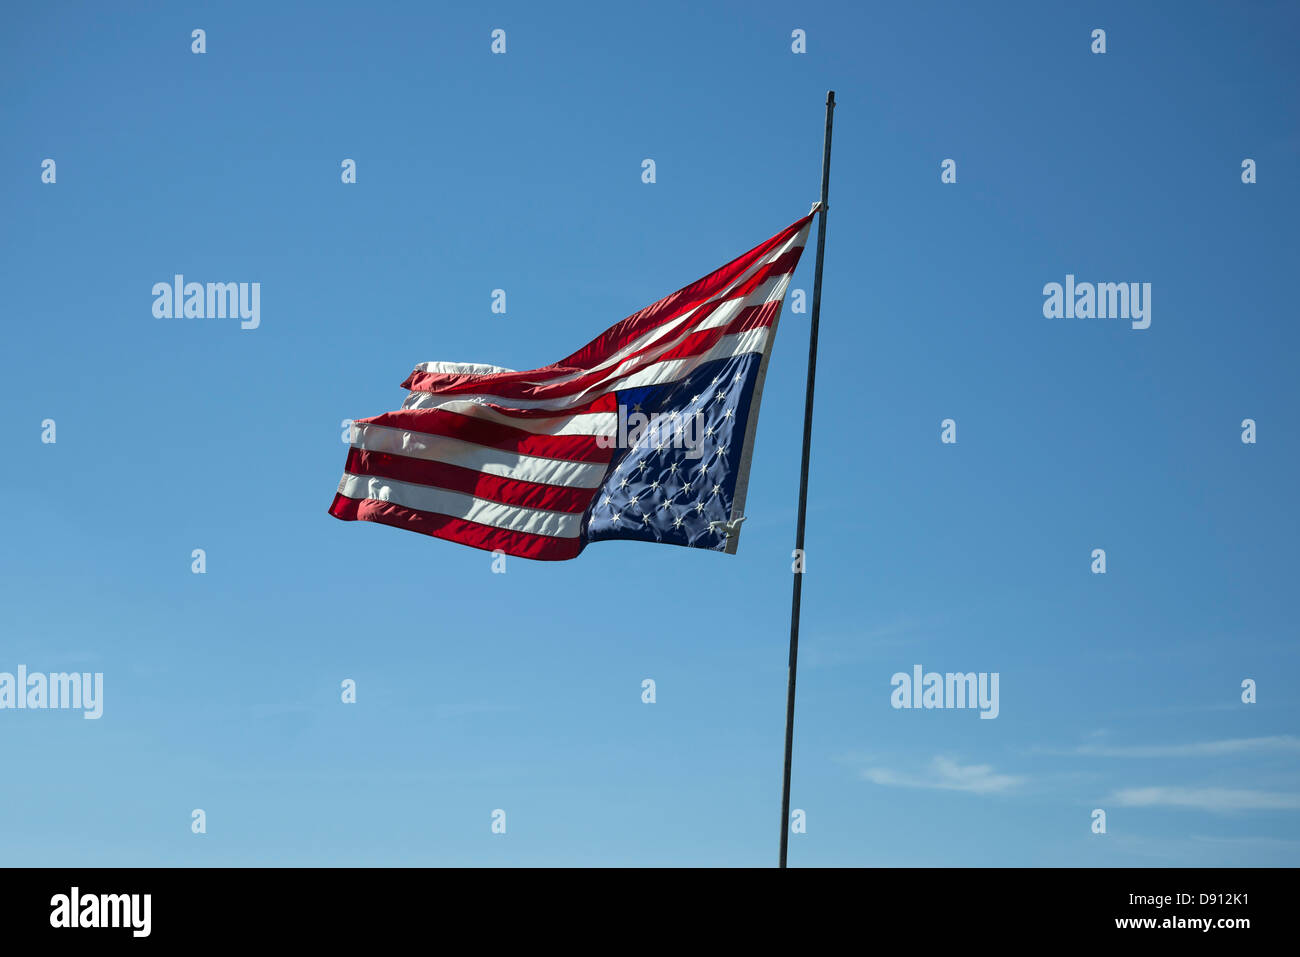 American flag flying upside down is a sign of distress. - Stock Image